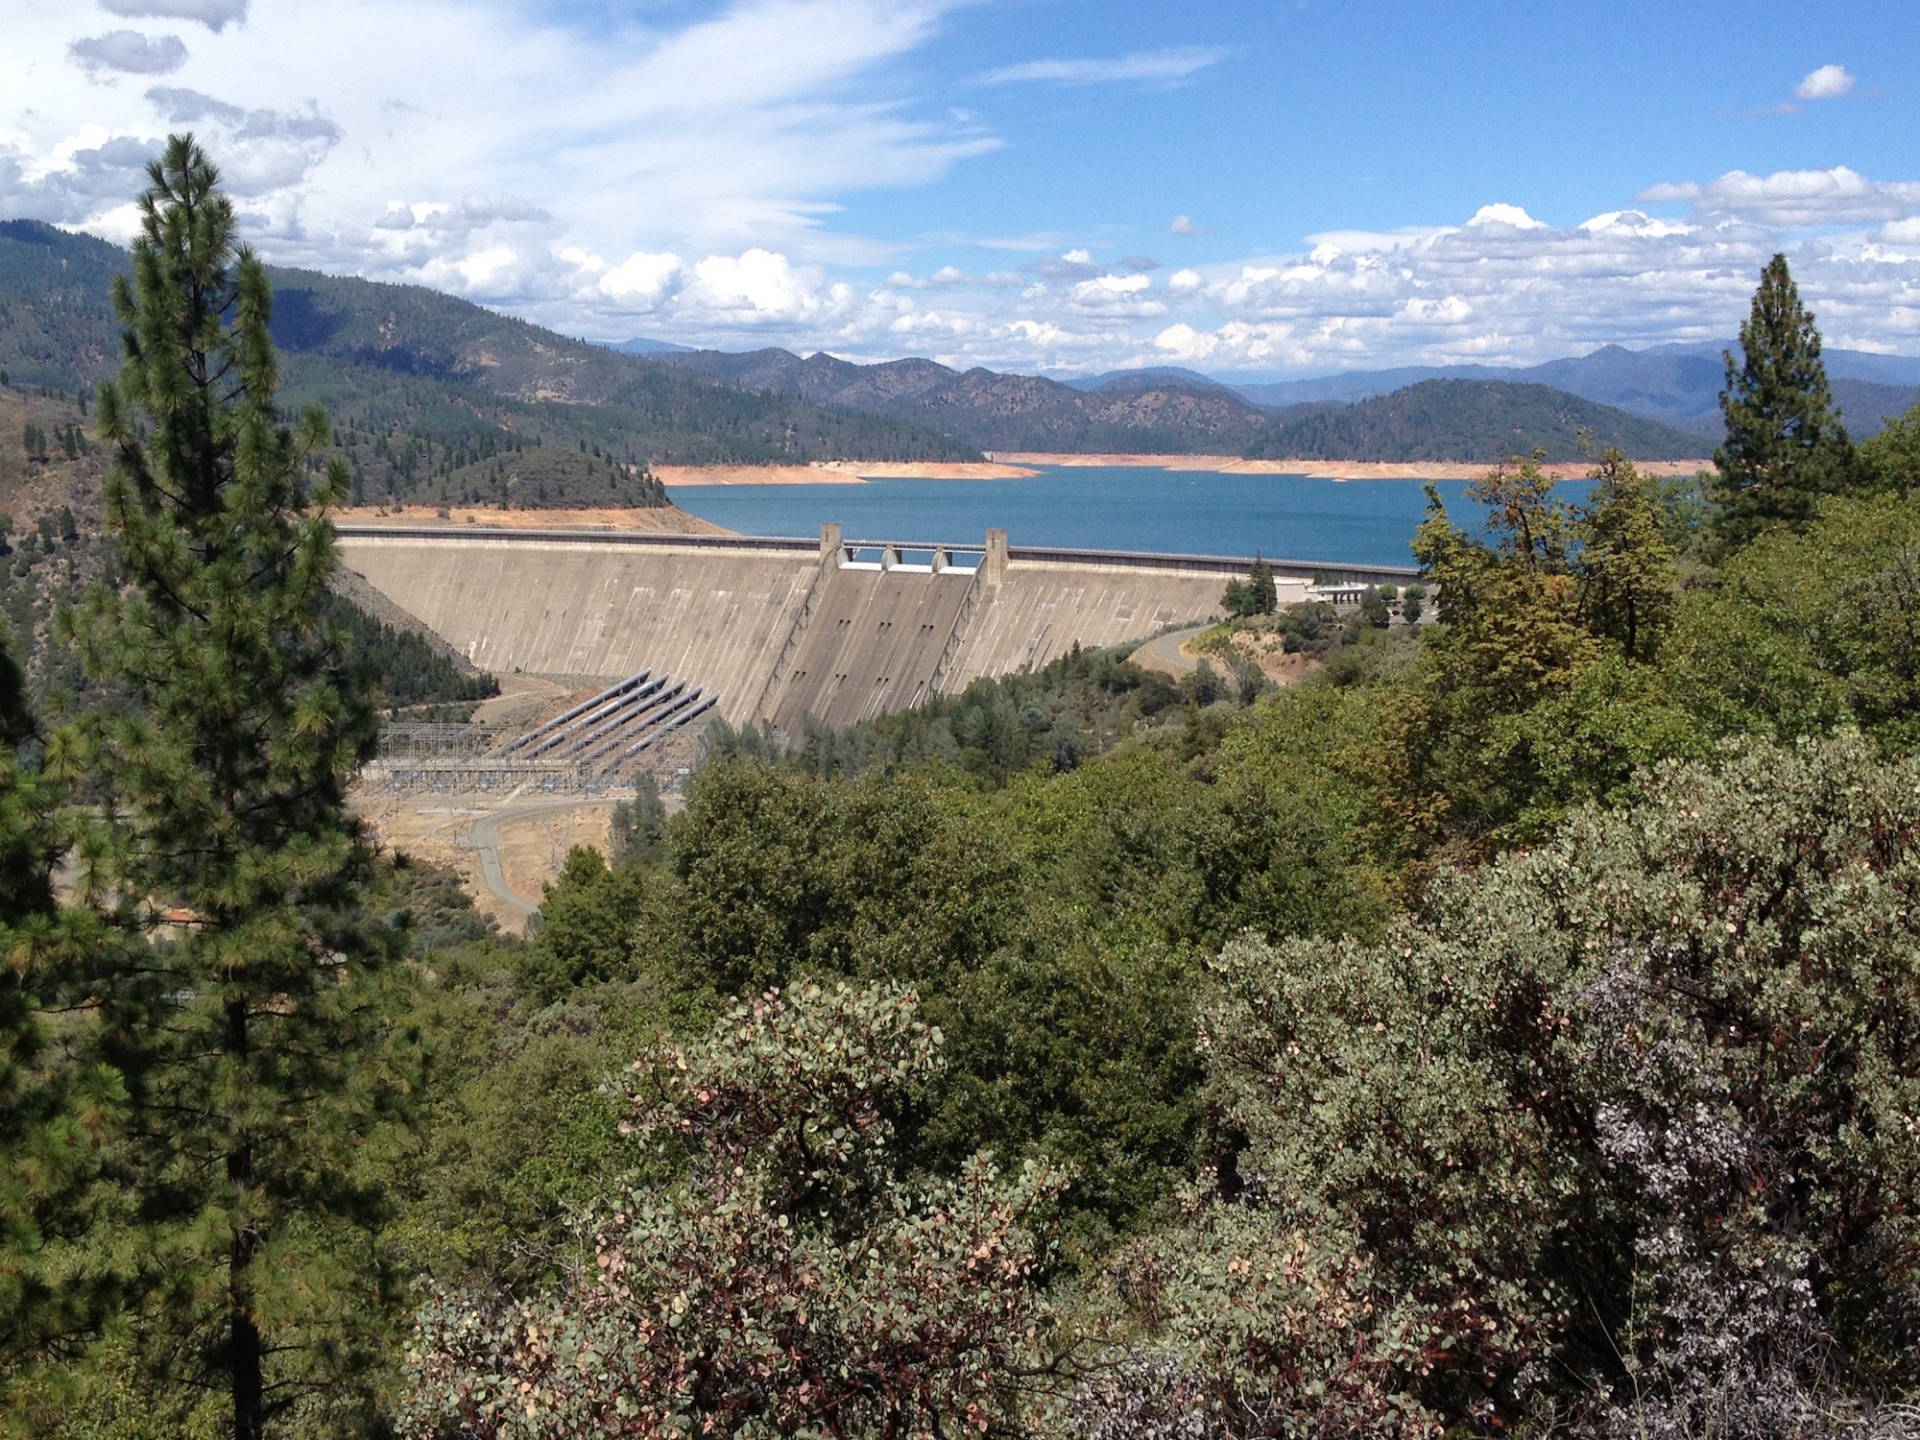 Federal officials say adding 18.5 feet to the top of Shasta Dam would enlarge the reservoir's capacity by about 14 percent. Craig Miller/KQED